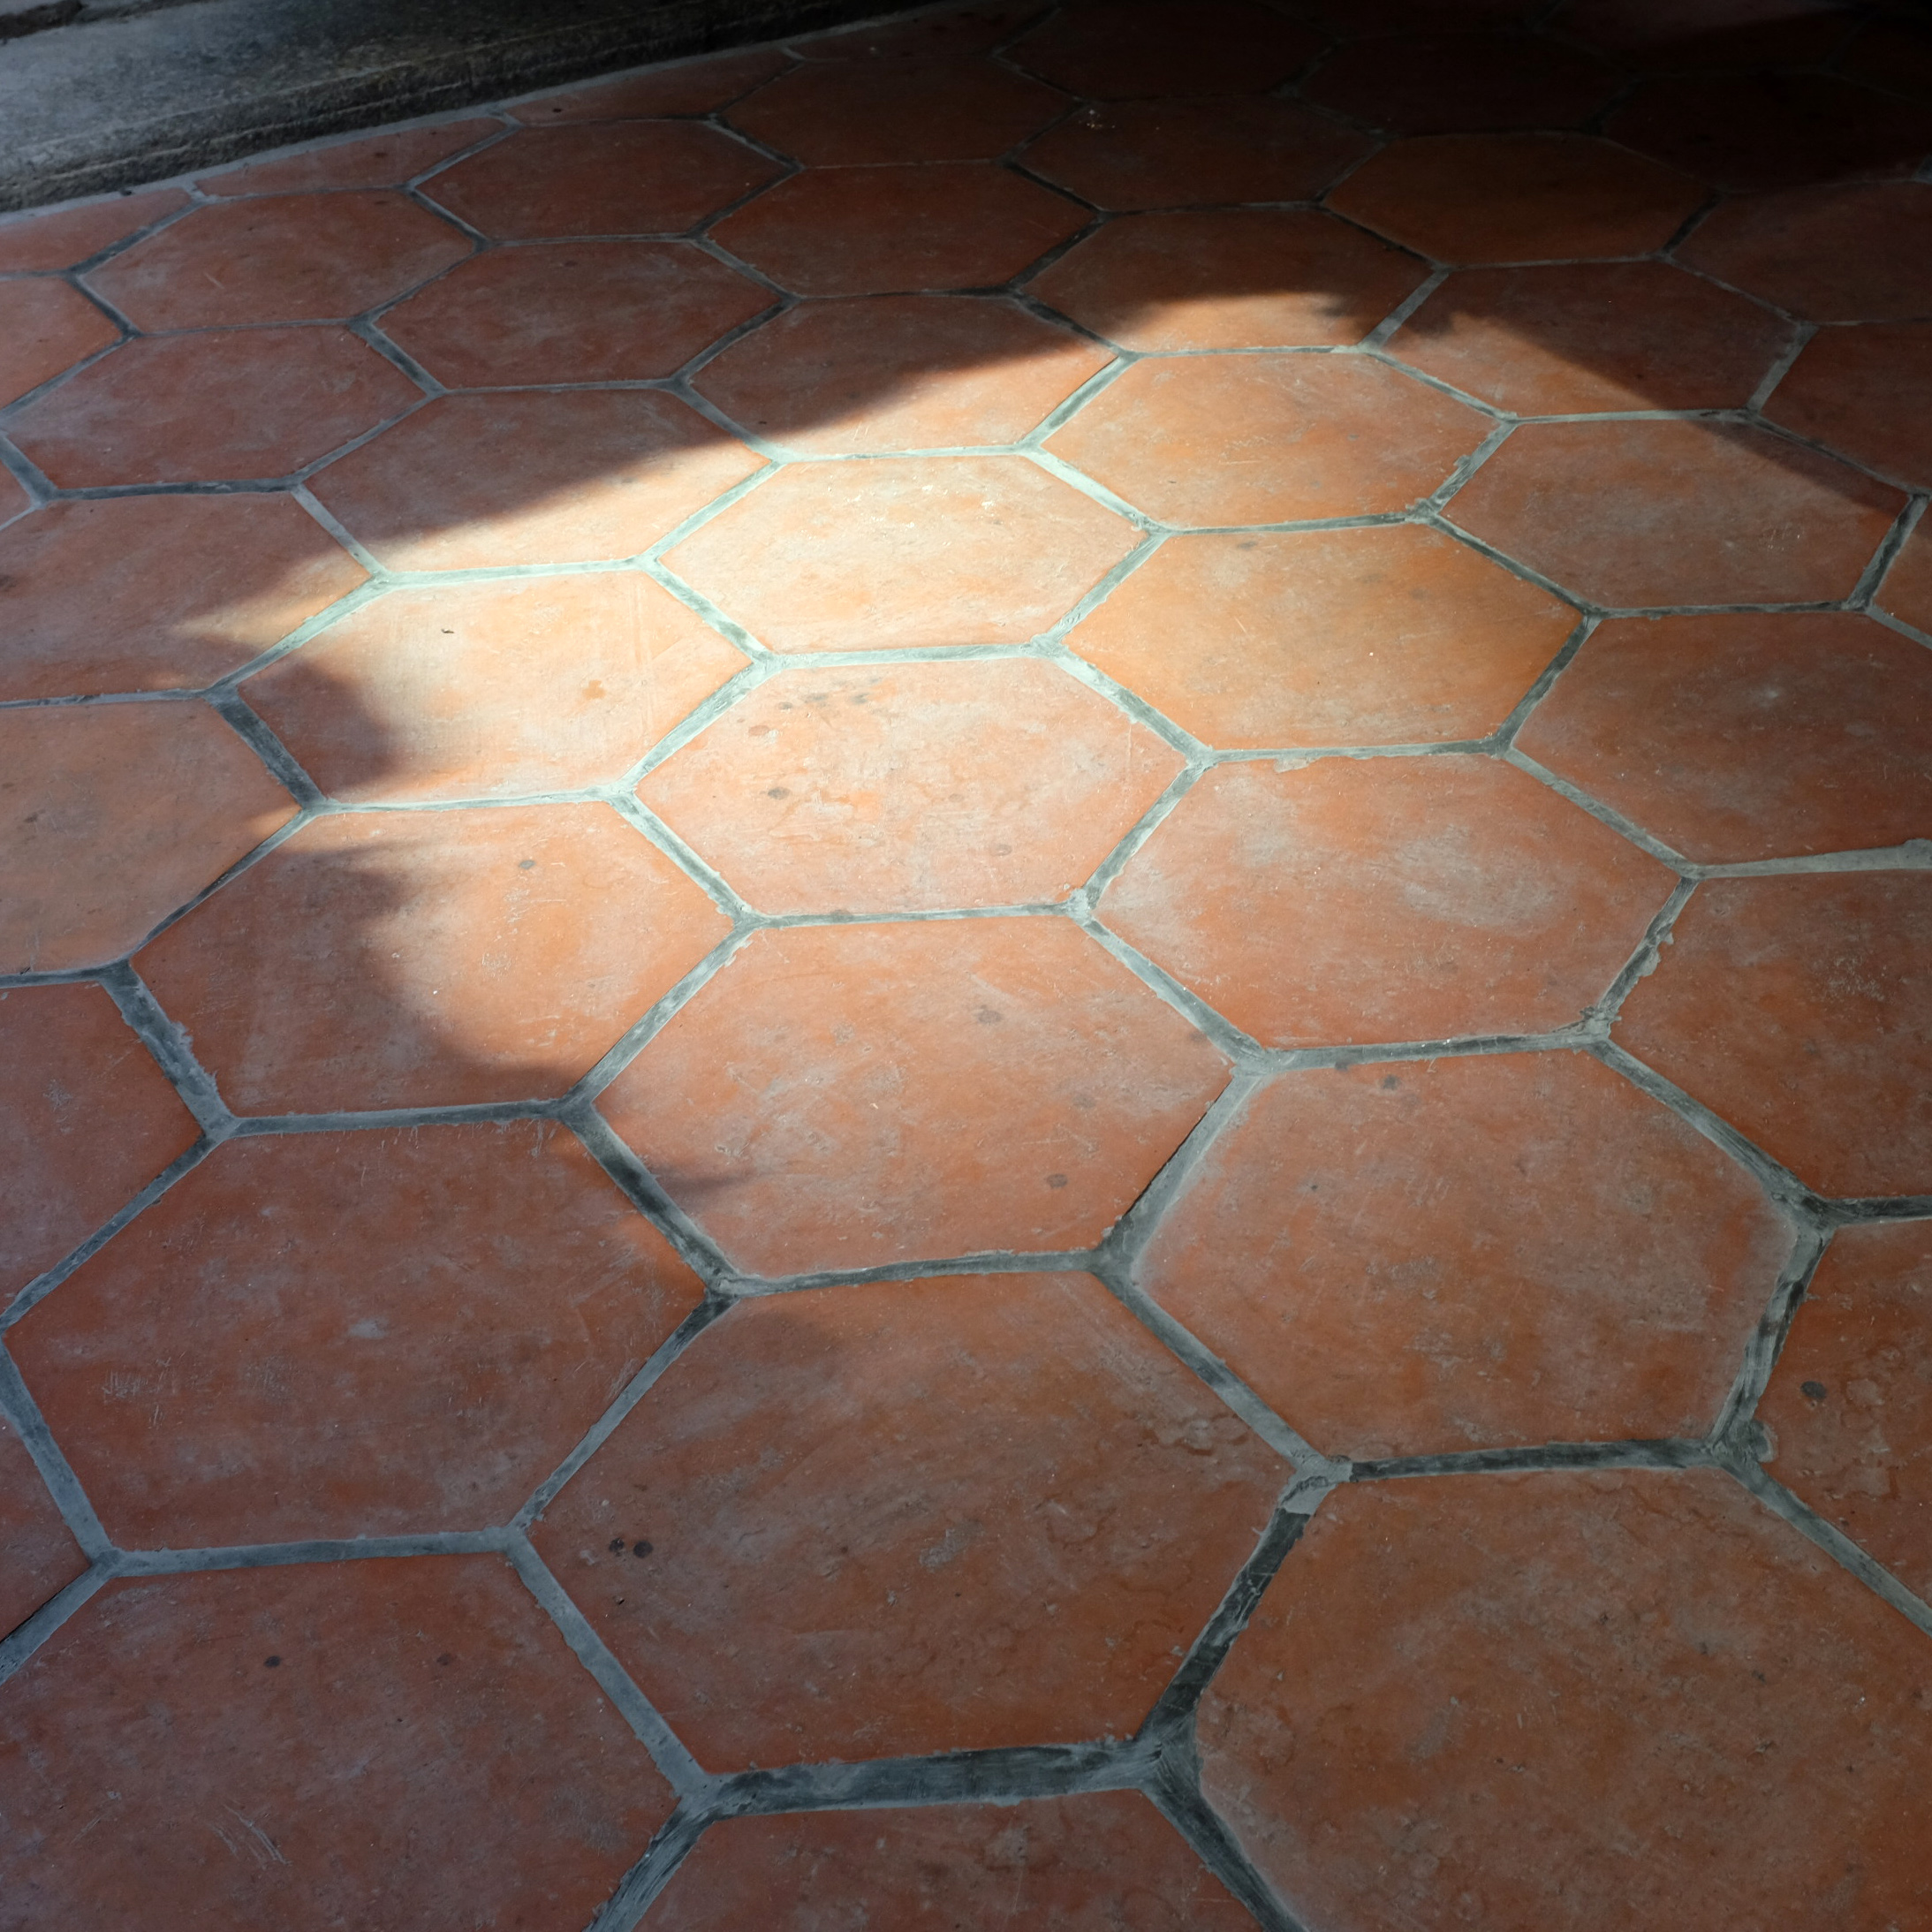 Sky Carpet Cleaning In Florence Kentucky Offer More Than Services Its Include Tile And Grout Using High Pressure